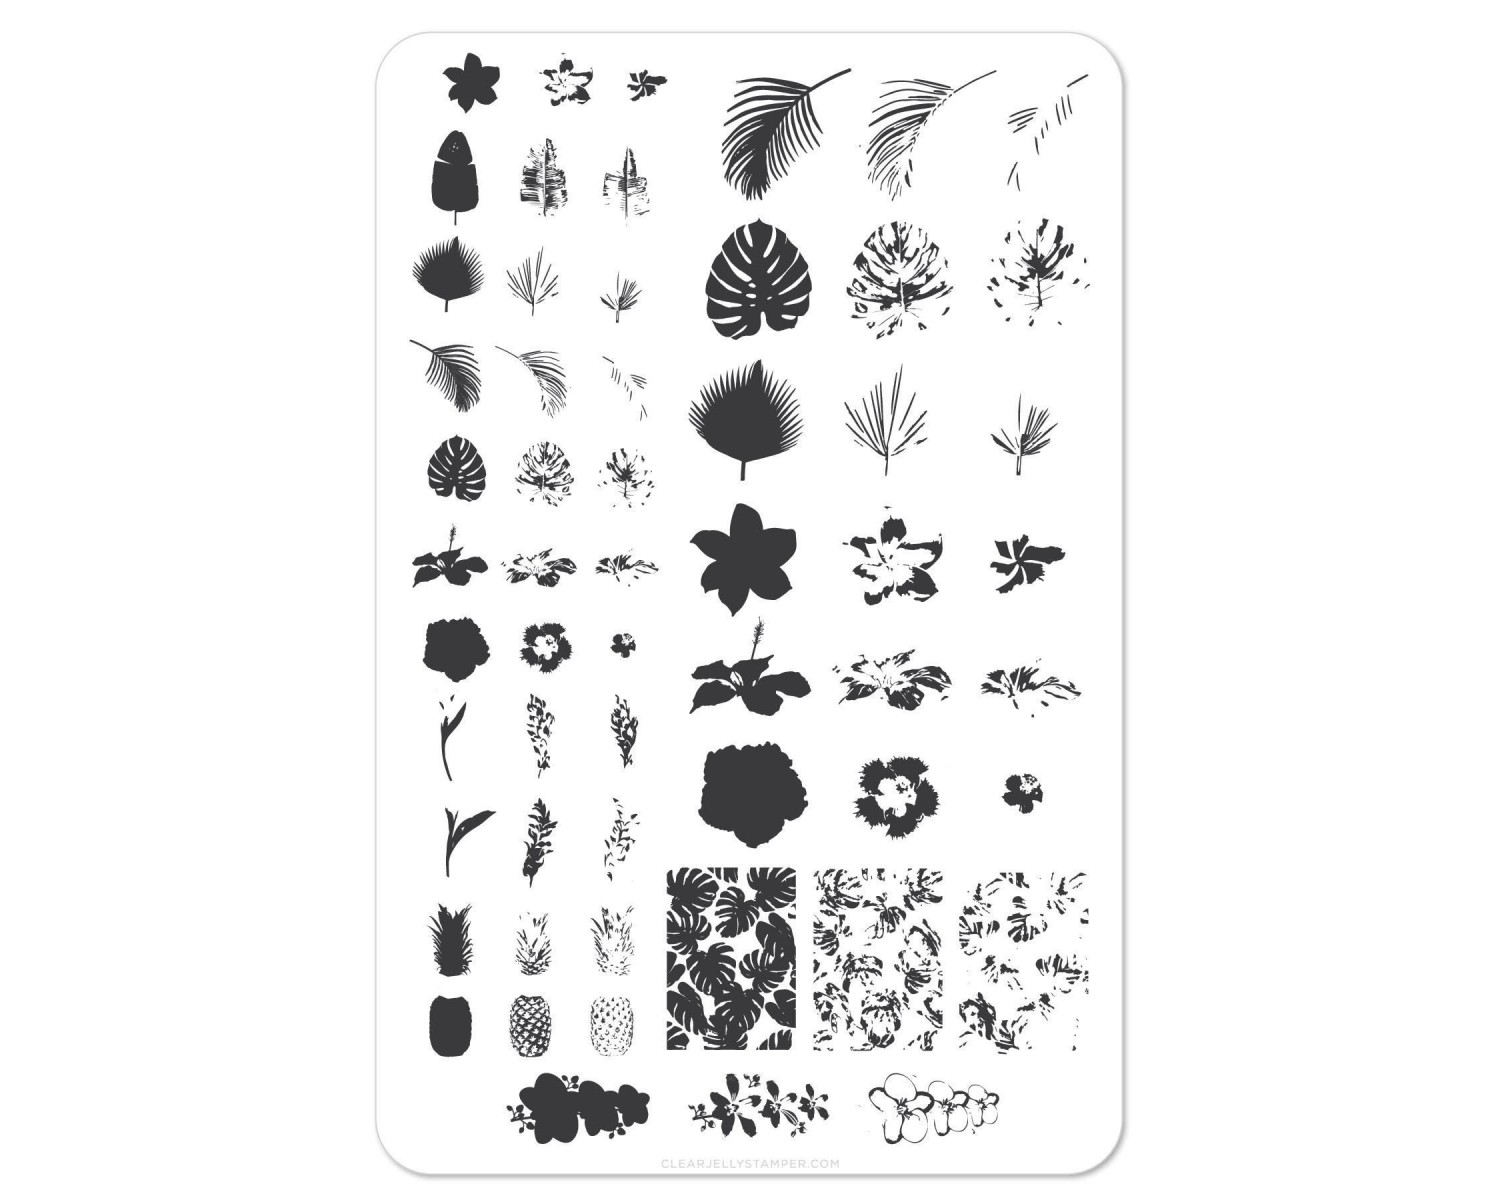 Clear Jelly Stamper - Tropical